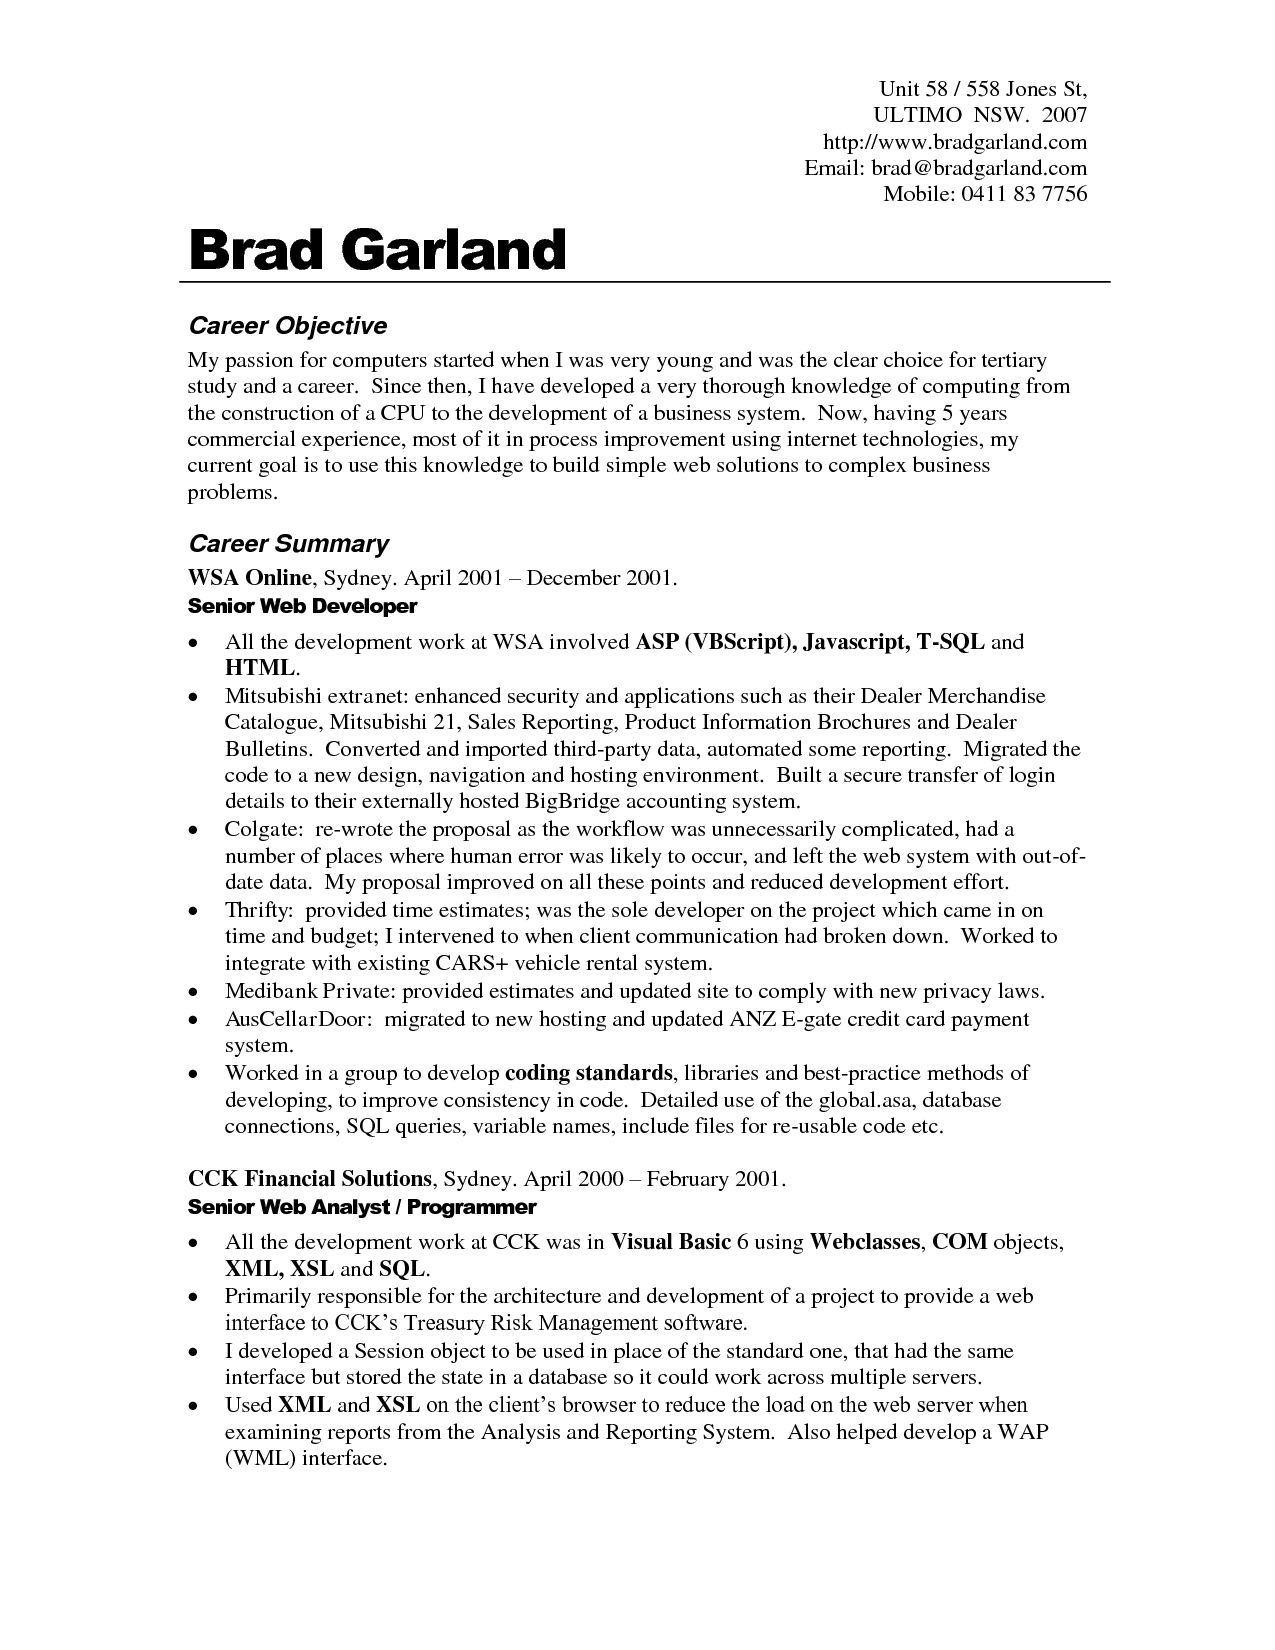 Senior Software Engineer Resume Sample Resume Action Verbs For Lawyers Formatting Back Post